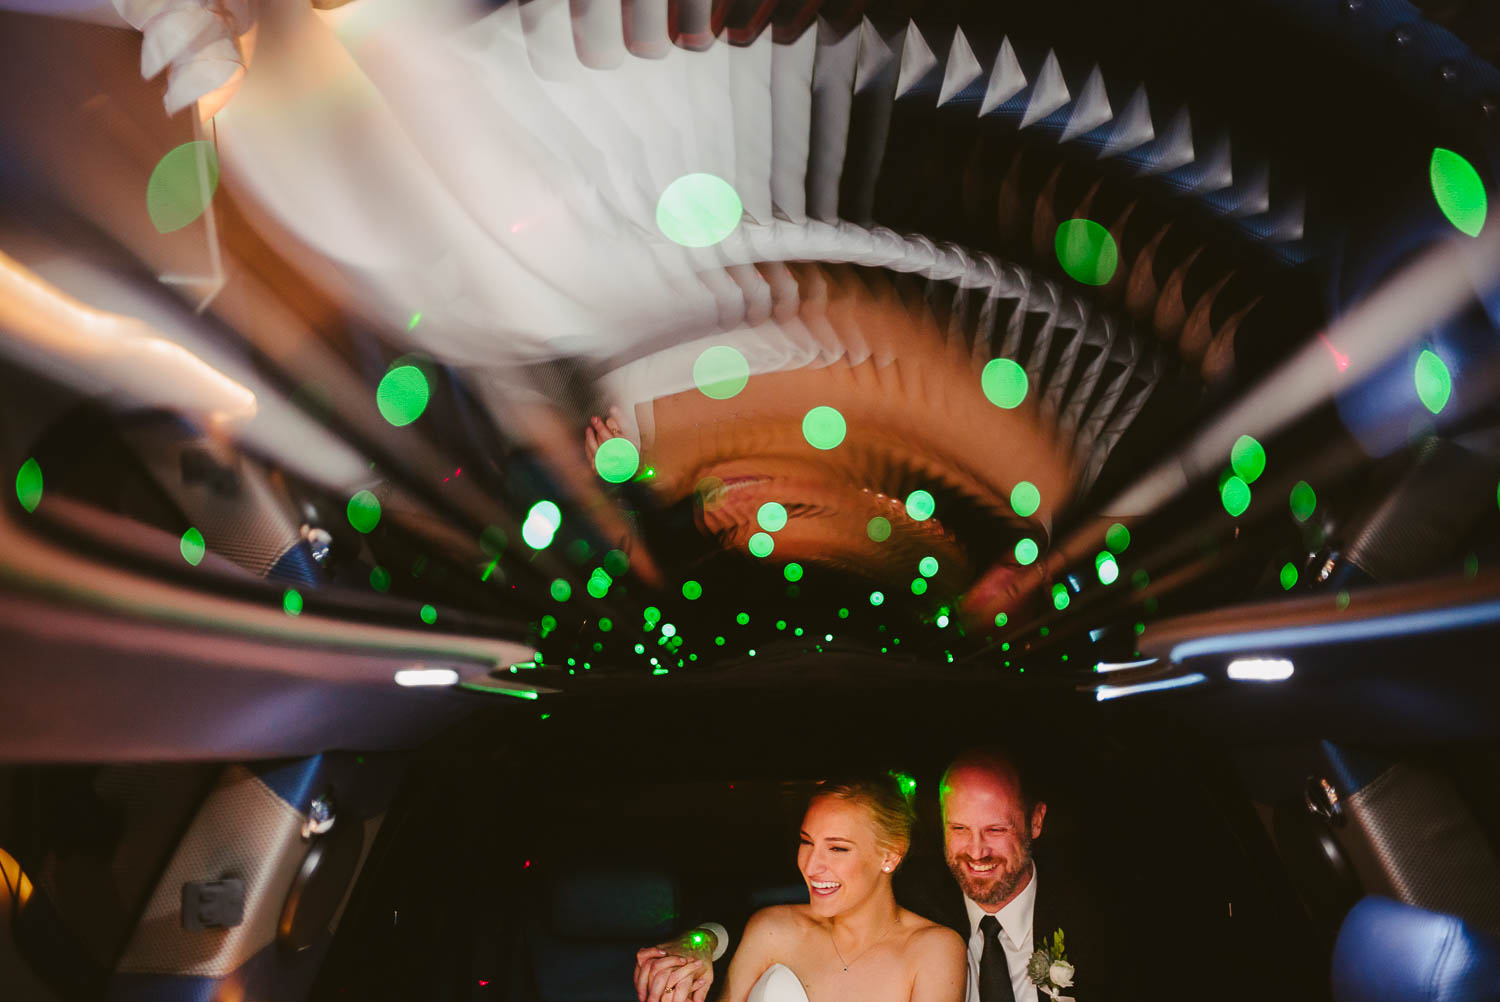 Couple share a funny moment inside a limo with green sparkling lights Houston Texas en route to Brennan's of Houston, Texas.